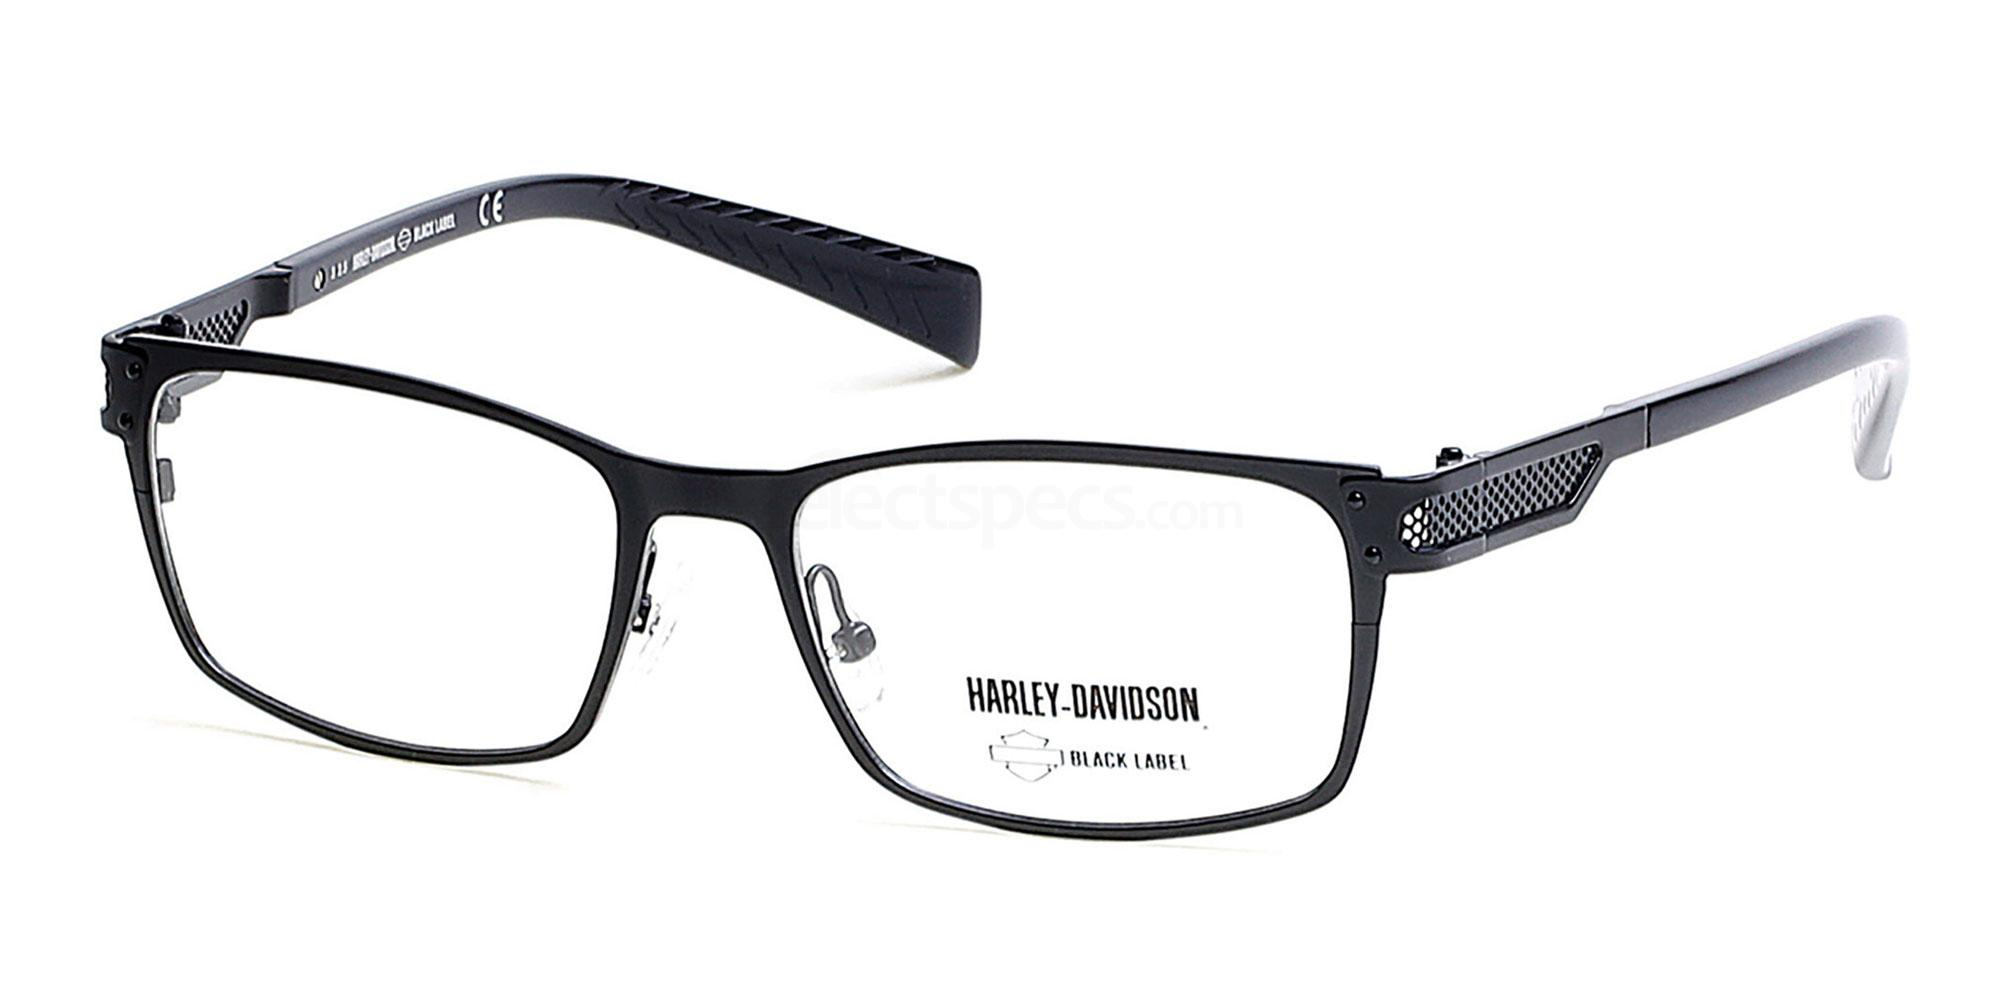 001 HD 1031 Glasses, Harley Davidson